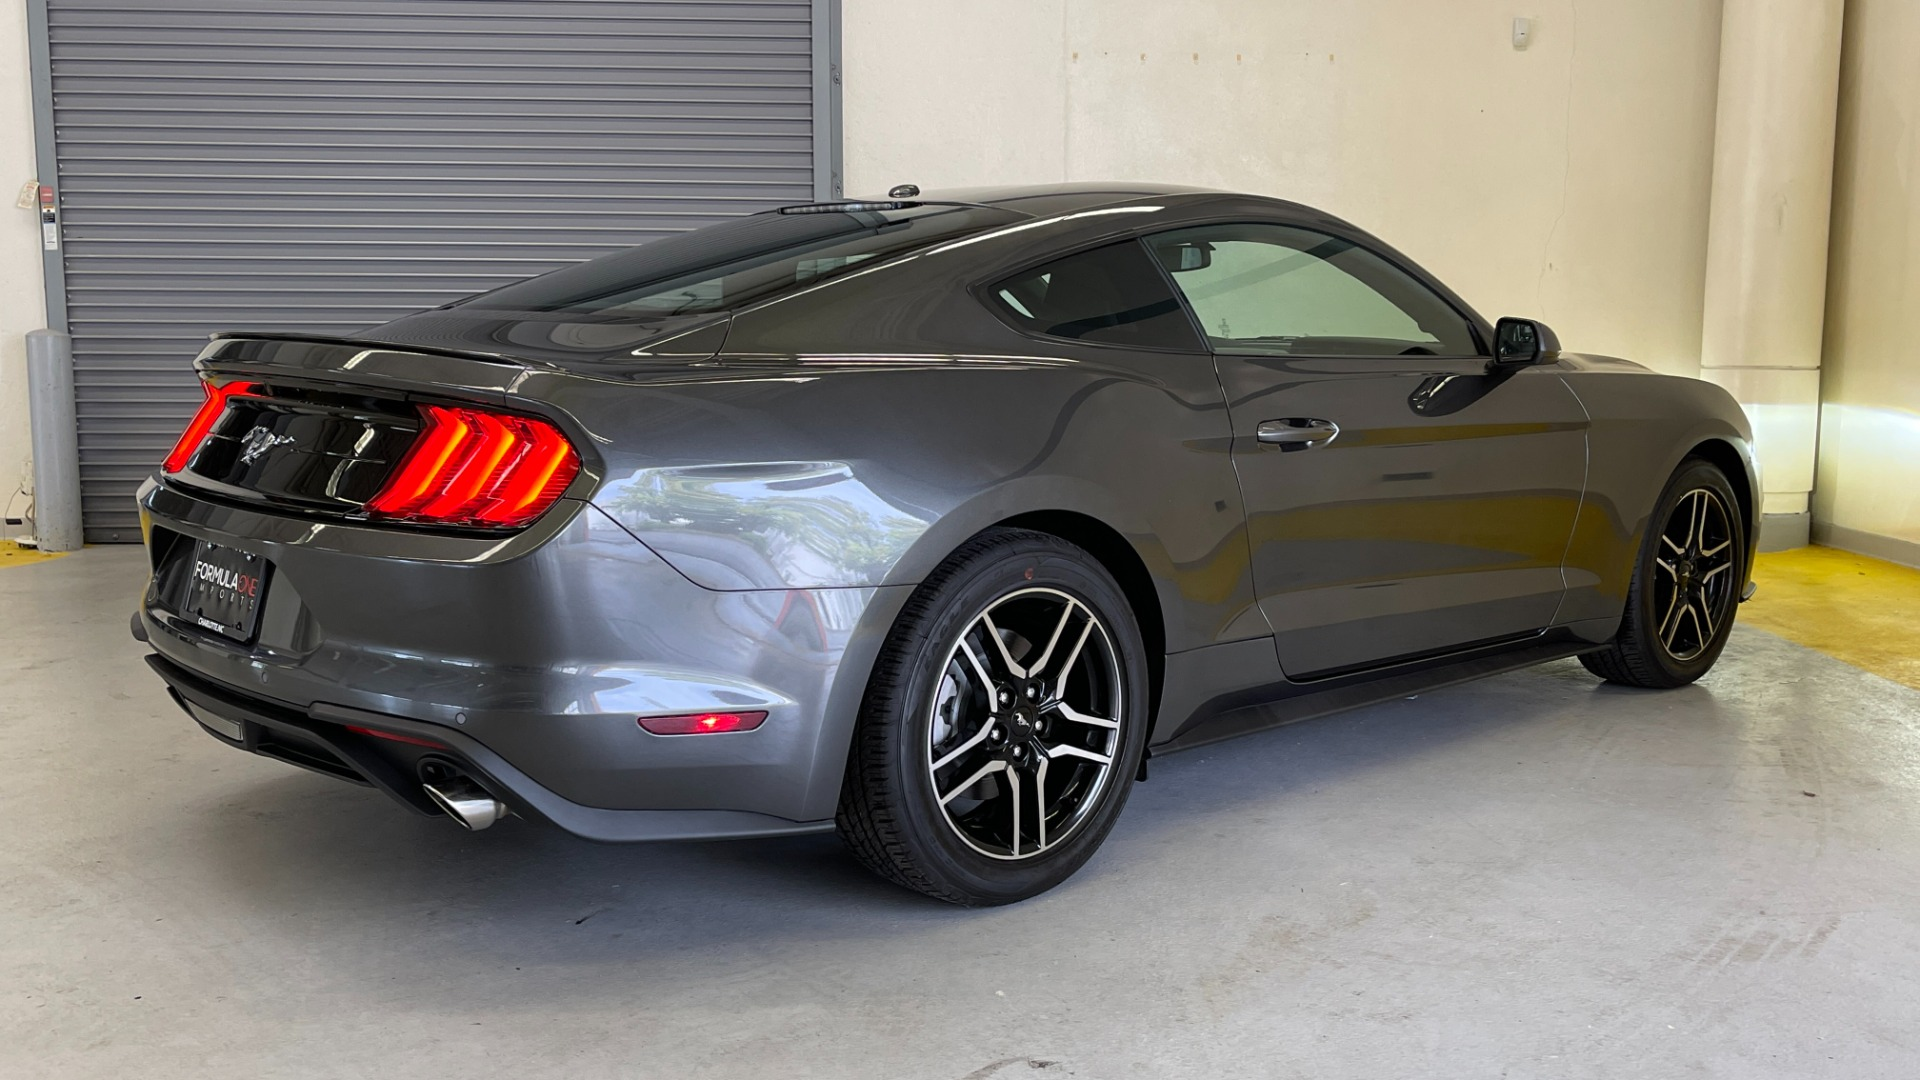 Used 2019 Ford MUSTANG ECOBOOST 2.3L / 10-SPD AUTO / SYNC3 8INCH SCREEN / TRACK APPS / REARVIEW for sale $31,795 at Formula Imports in Charlotte NC 28227 6